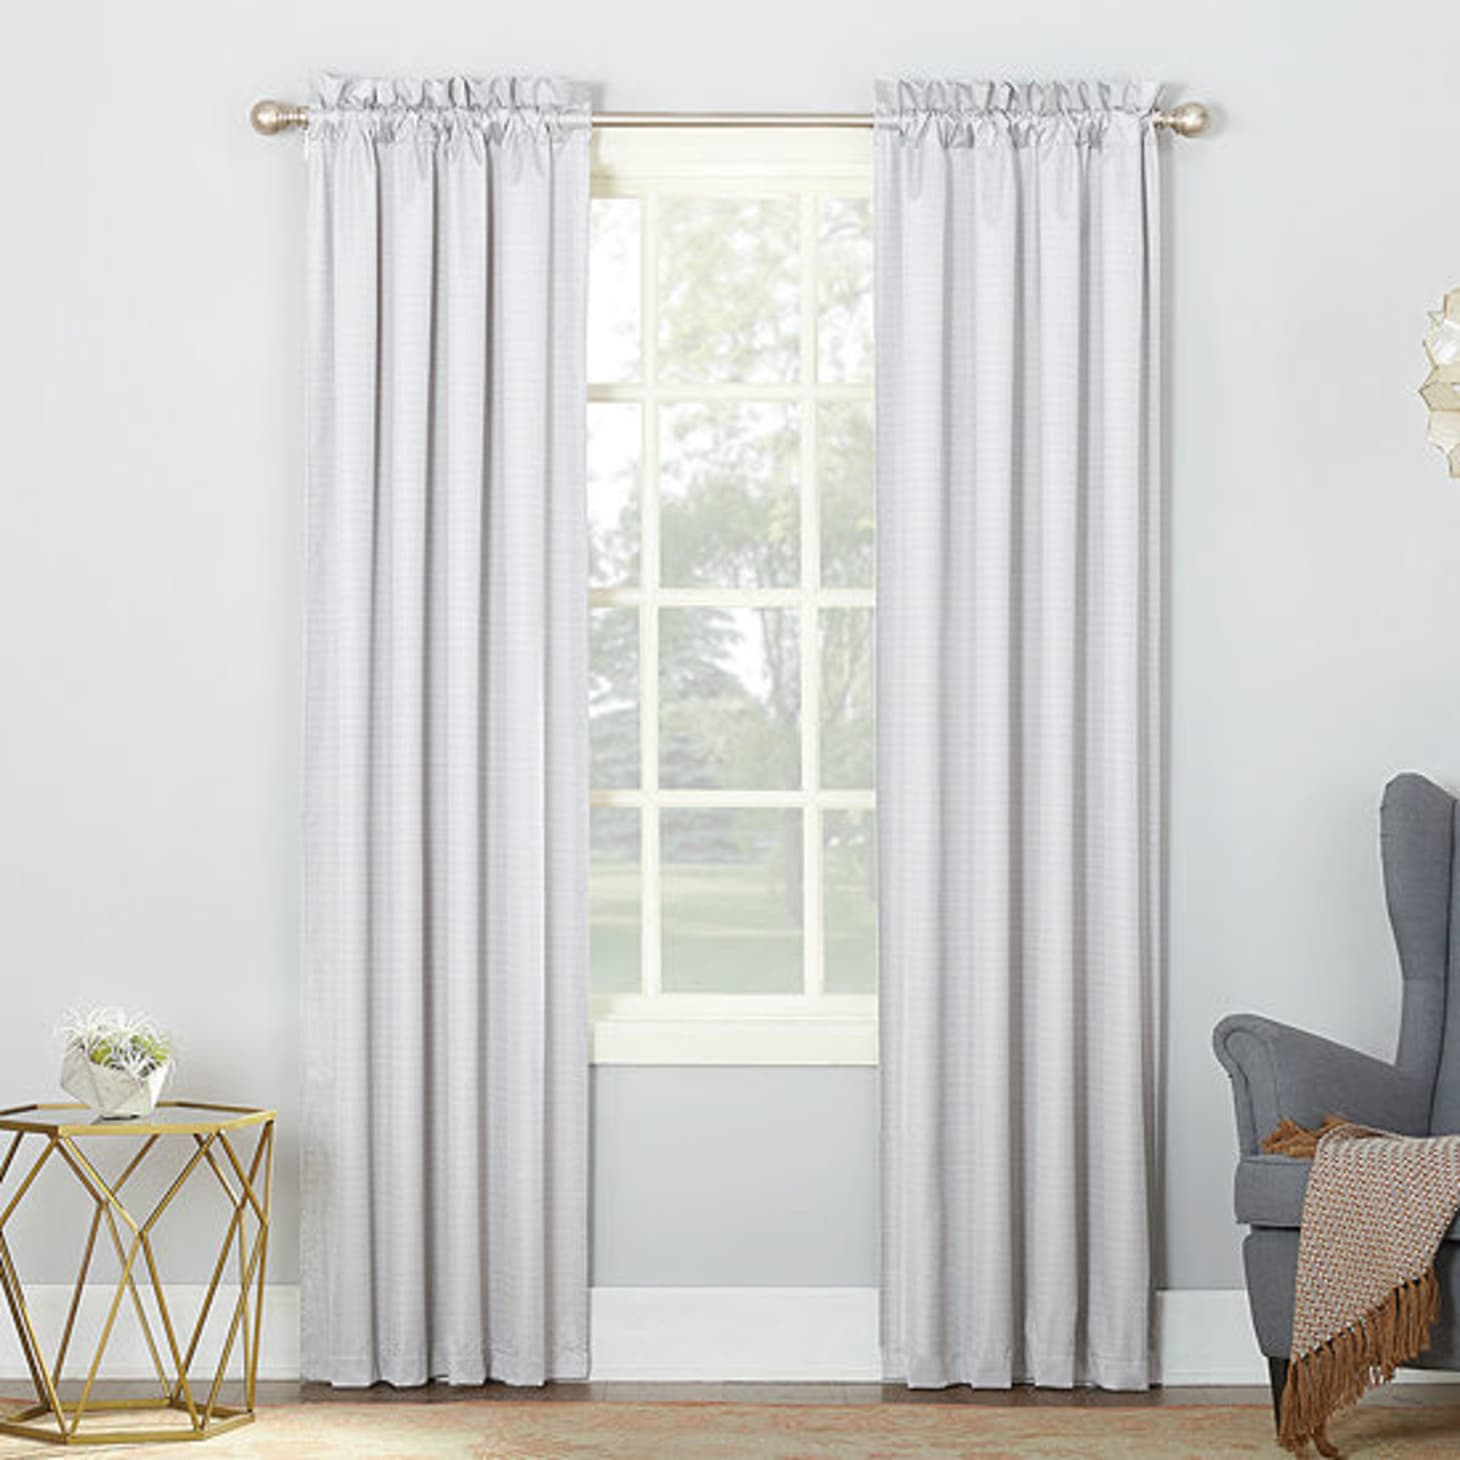 Best Places to Buy Cheap Blinds, Shades, and Curtains